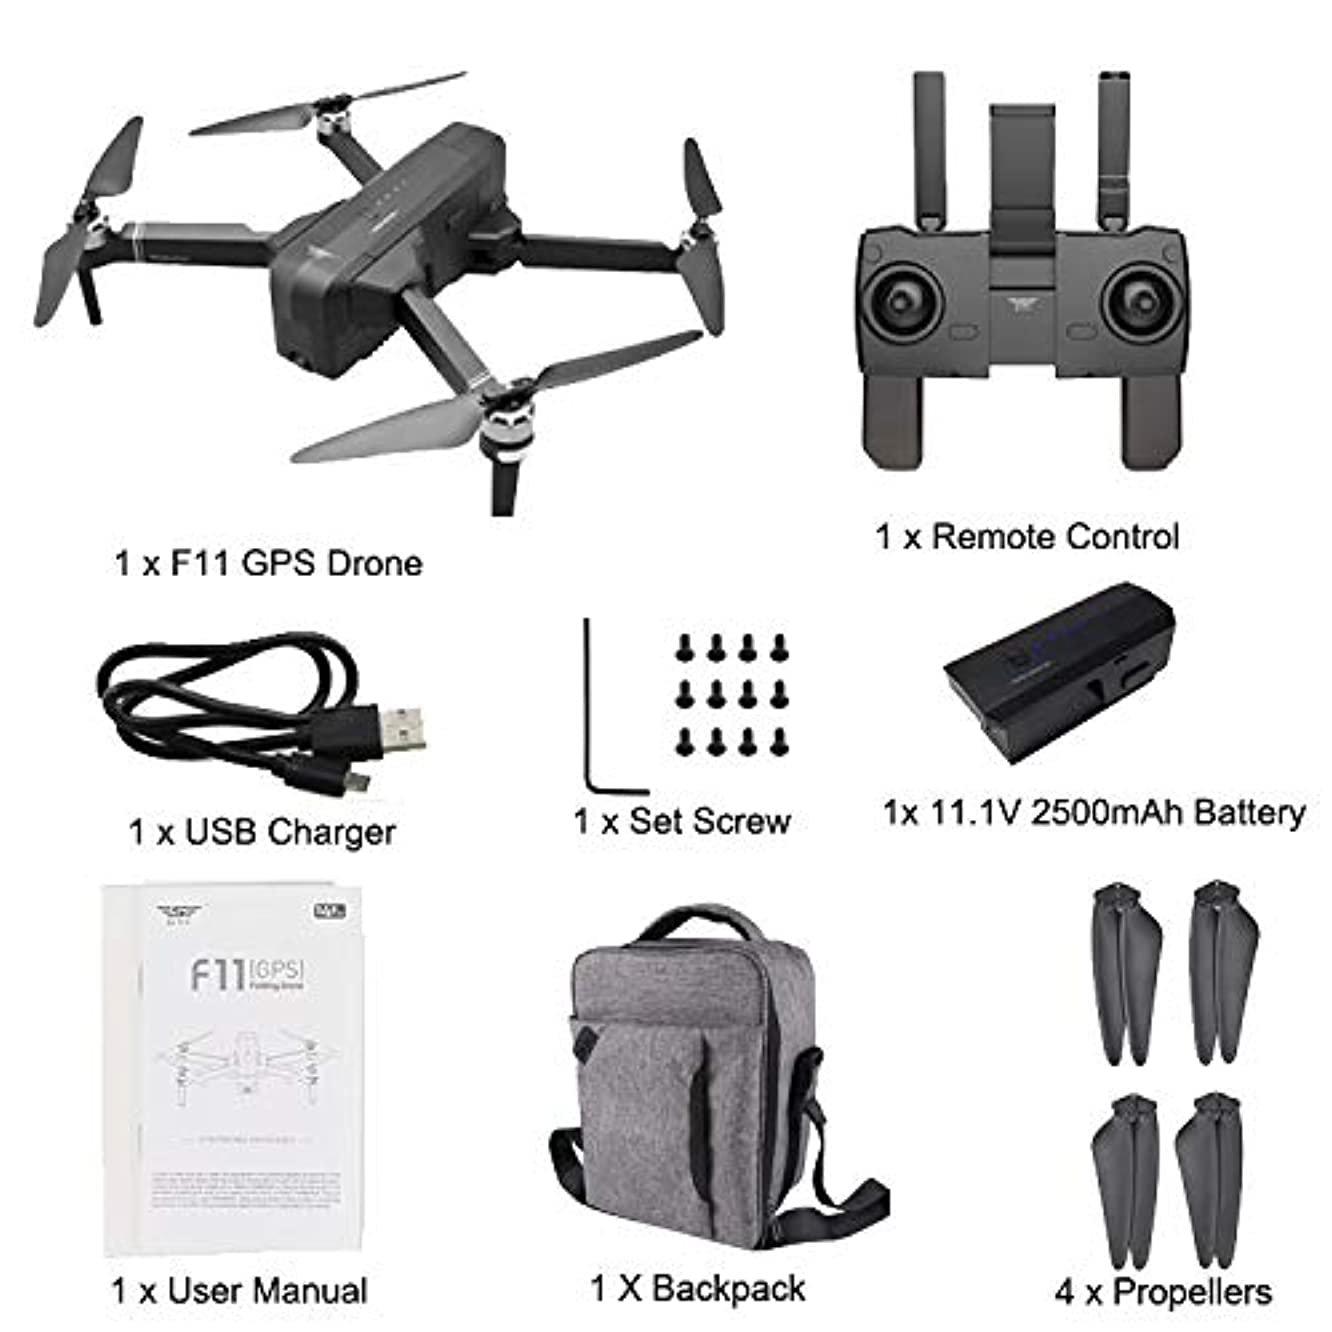 SMOXX SJRC F11 GPS 5G WiFi FPV 1080P HD Camera Foldable Brushless RC Drone + Backpack, Silent, Compact & Speed Control, Autonomous, Real-time Transmission